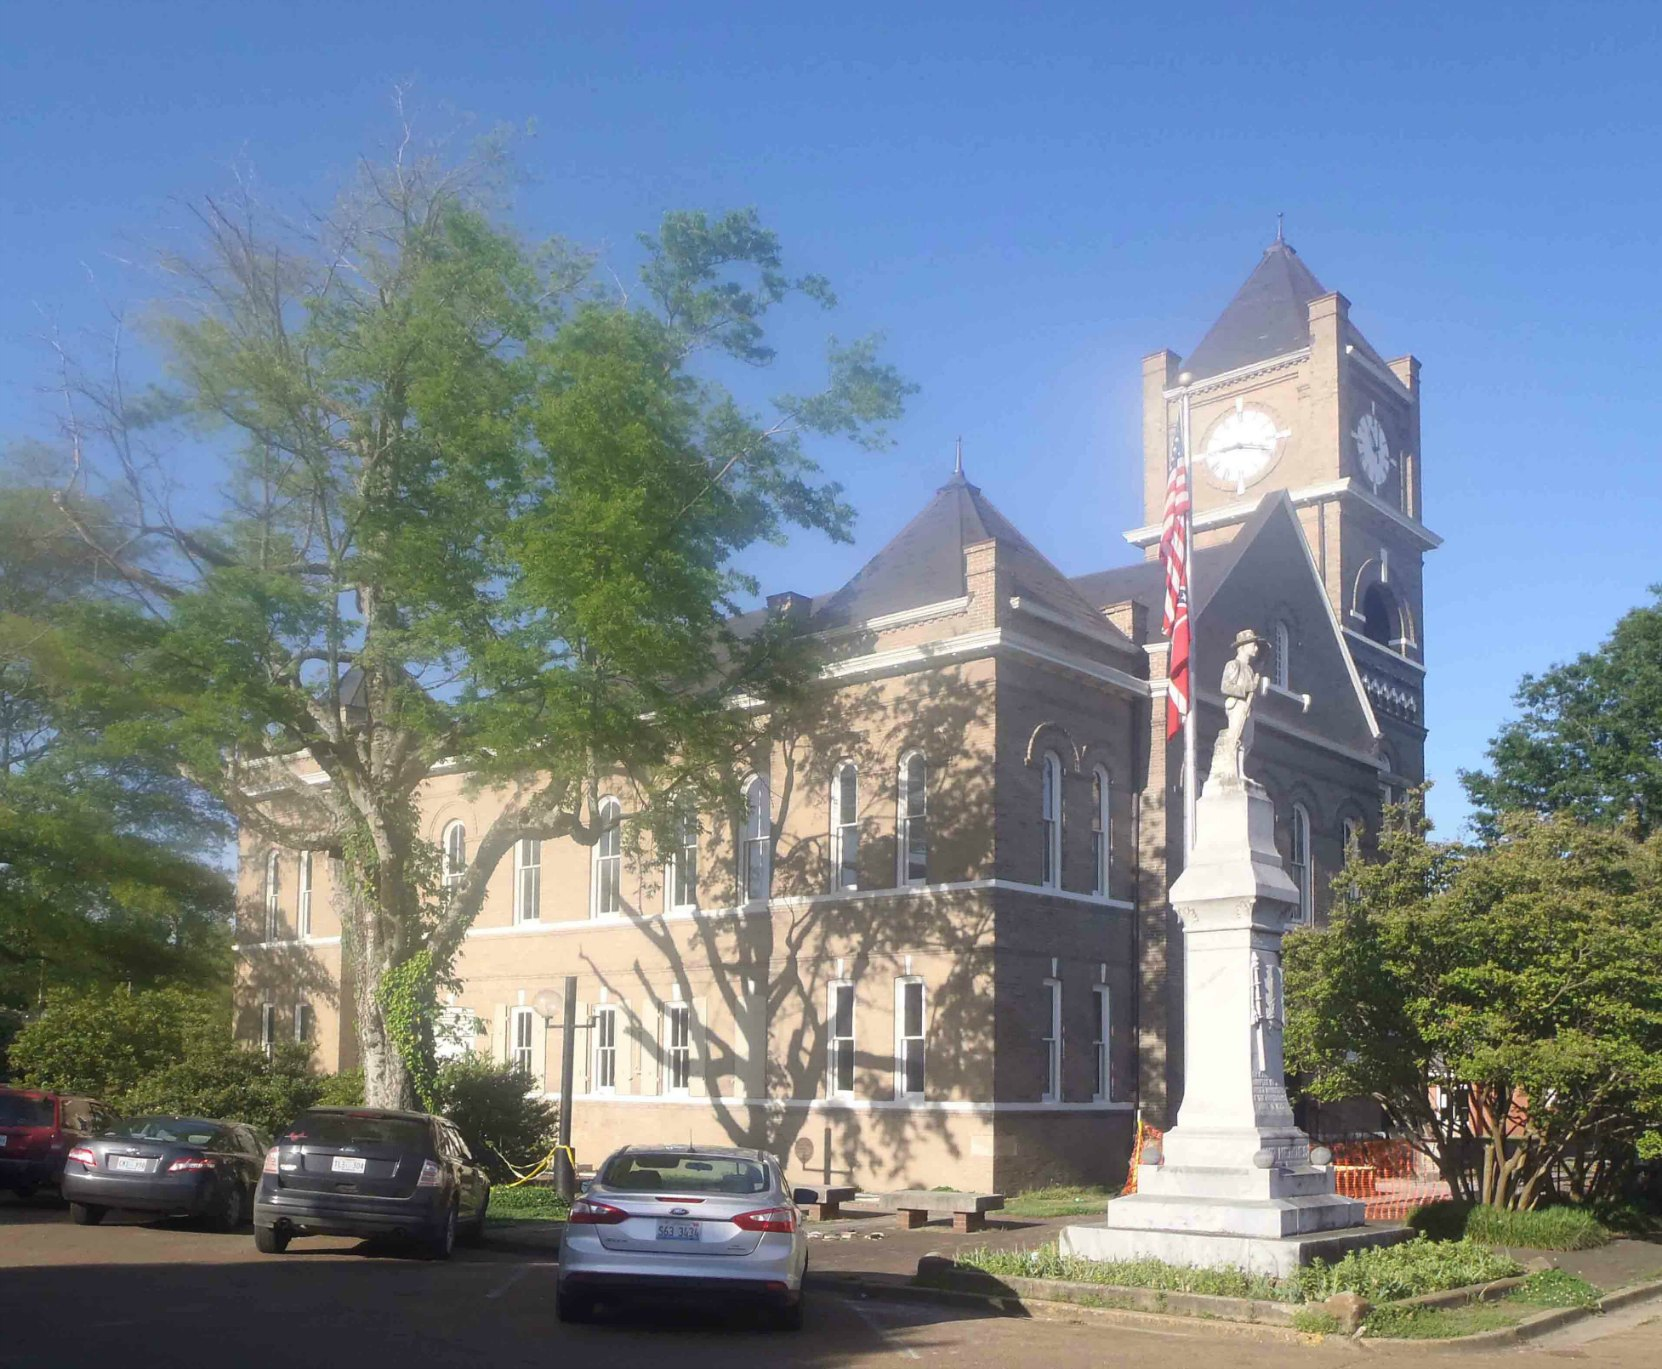 The Tallahatchie County Court House, Sumner, Mississippi